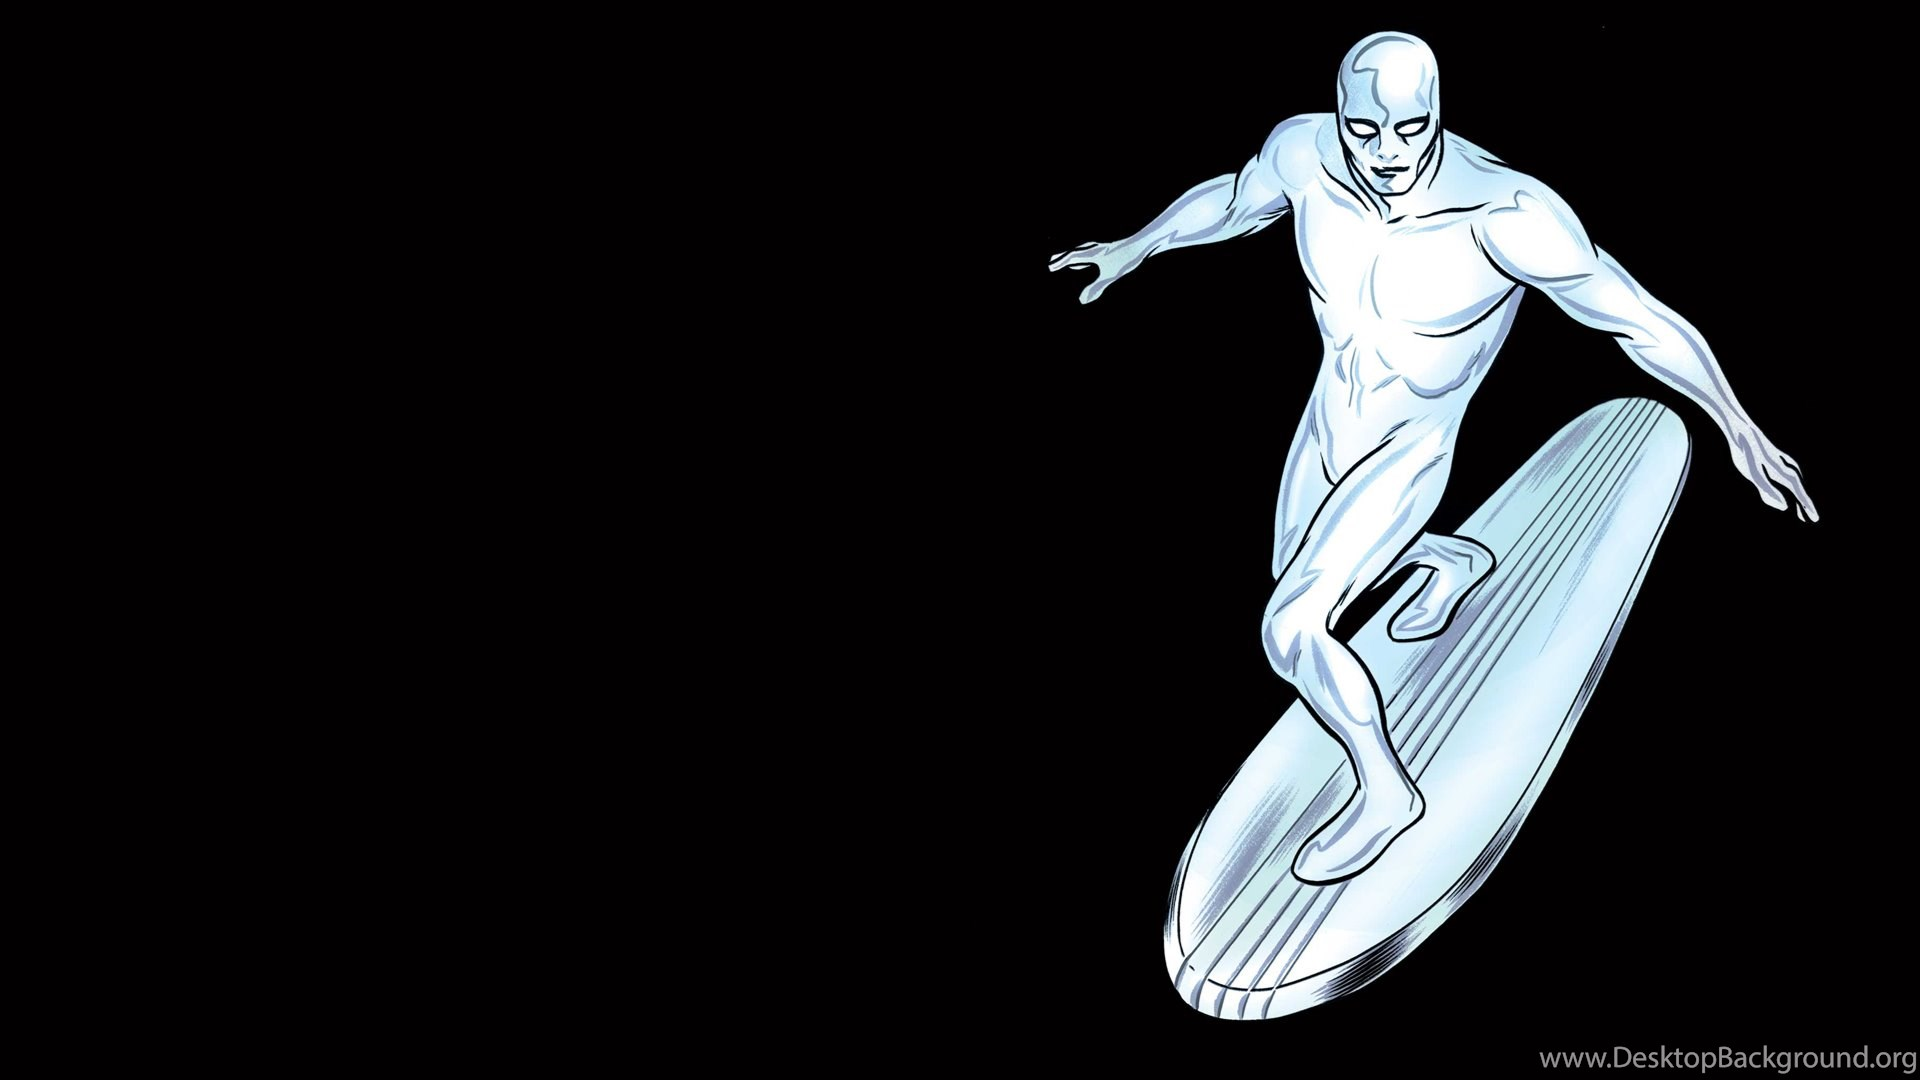 Hd Background Wallpaper 800x600: Silver Surfer HD Wallpapers Desktop Background